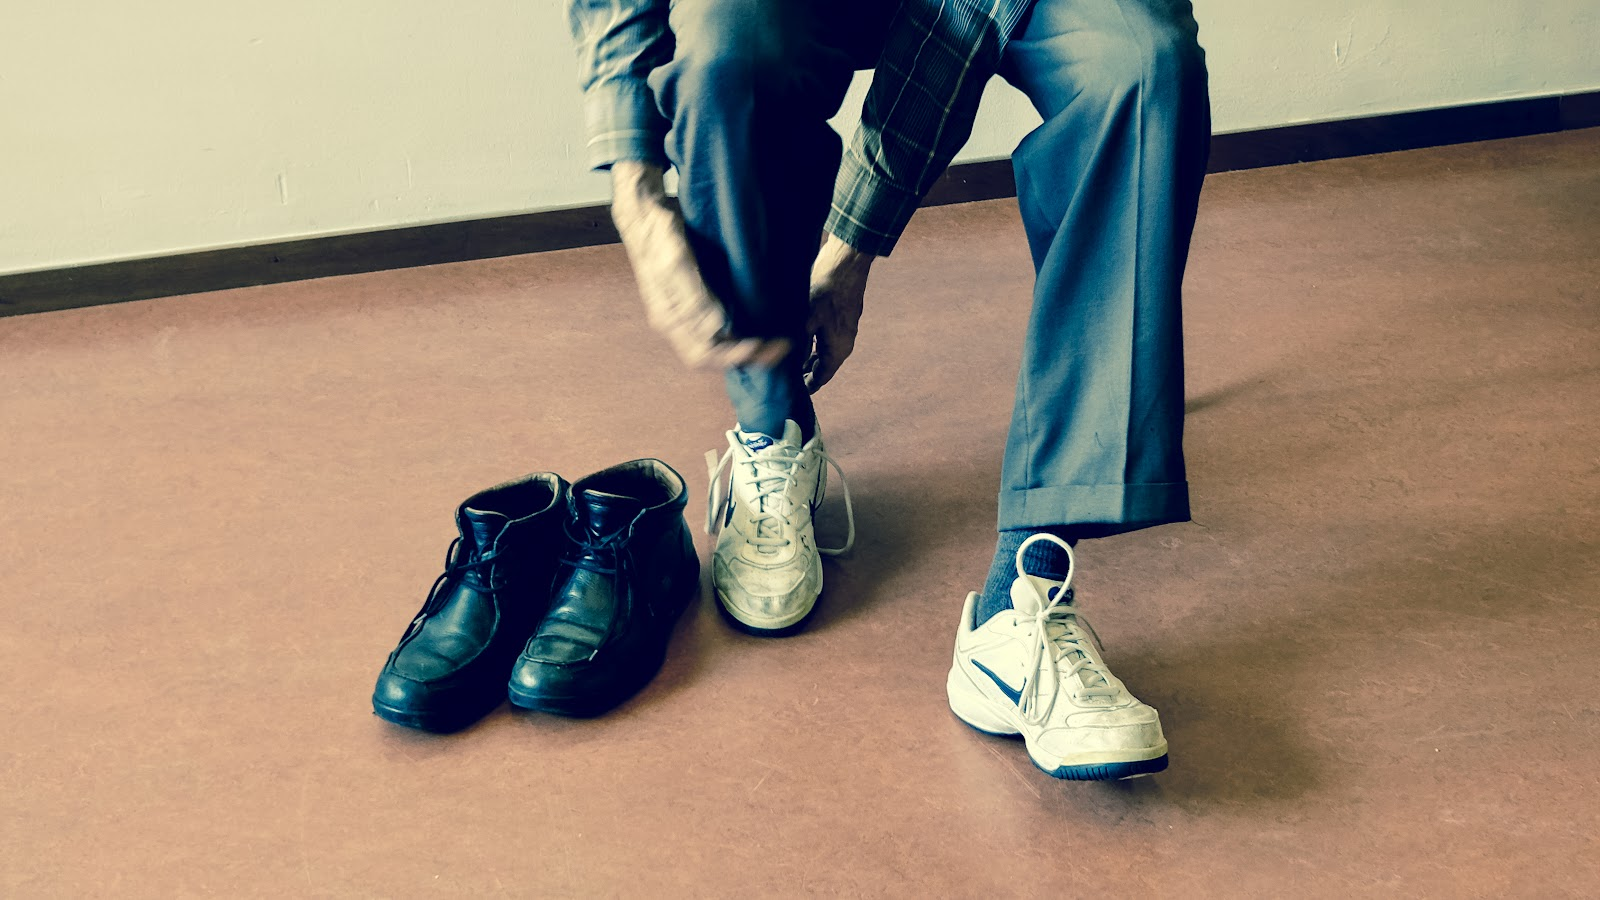 Man tying up shoes